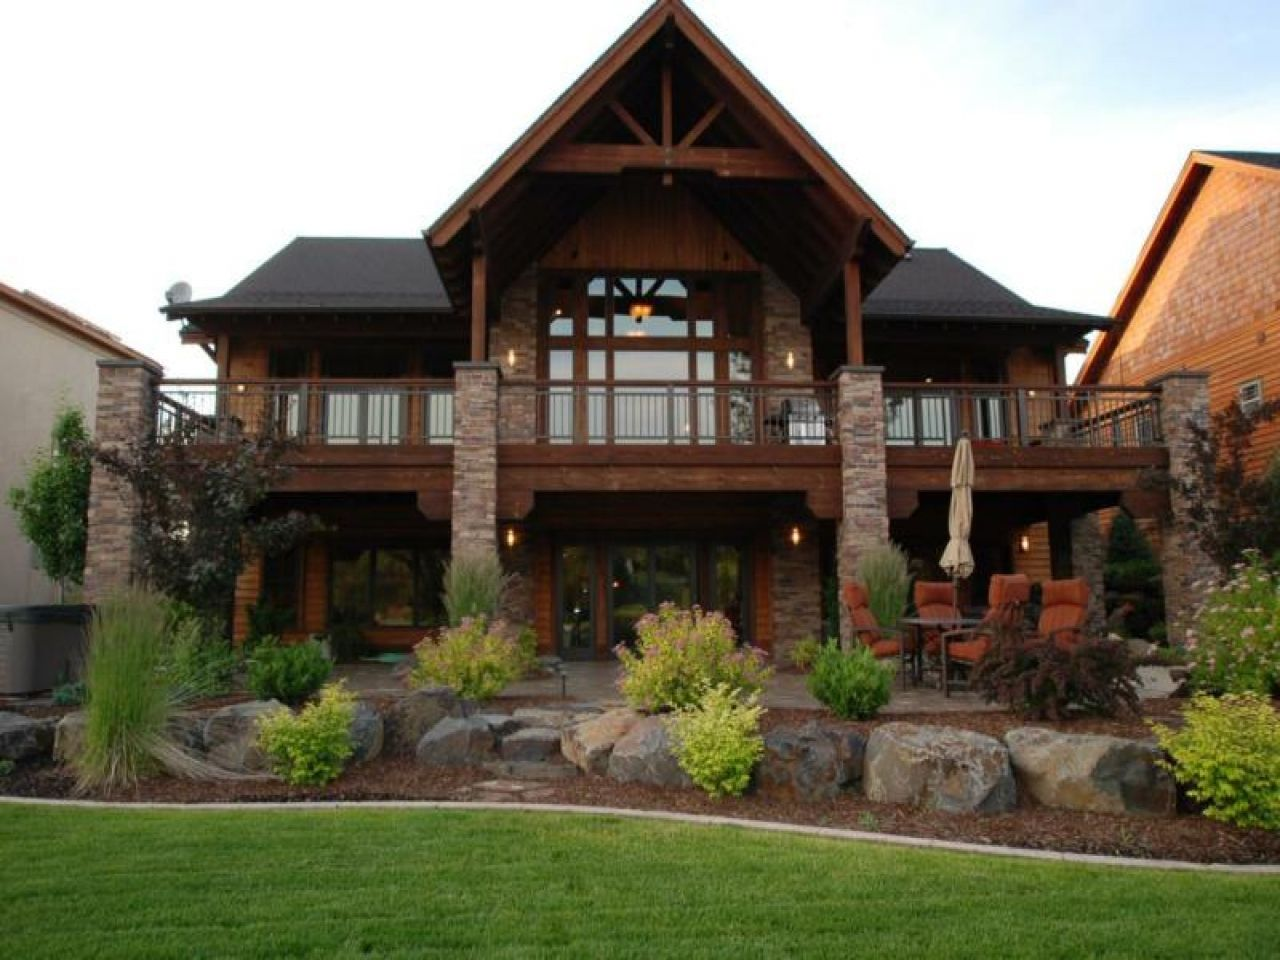 Incredible Deck Plans Walkout Basement Kitchen Small Lake House Plans With With Basement House Plans Ranch Style House Plans Lake House Plans